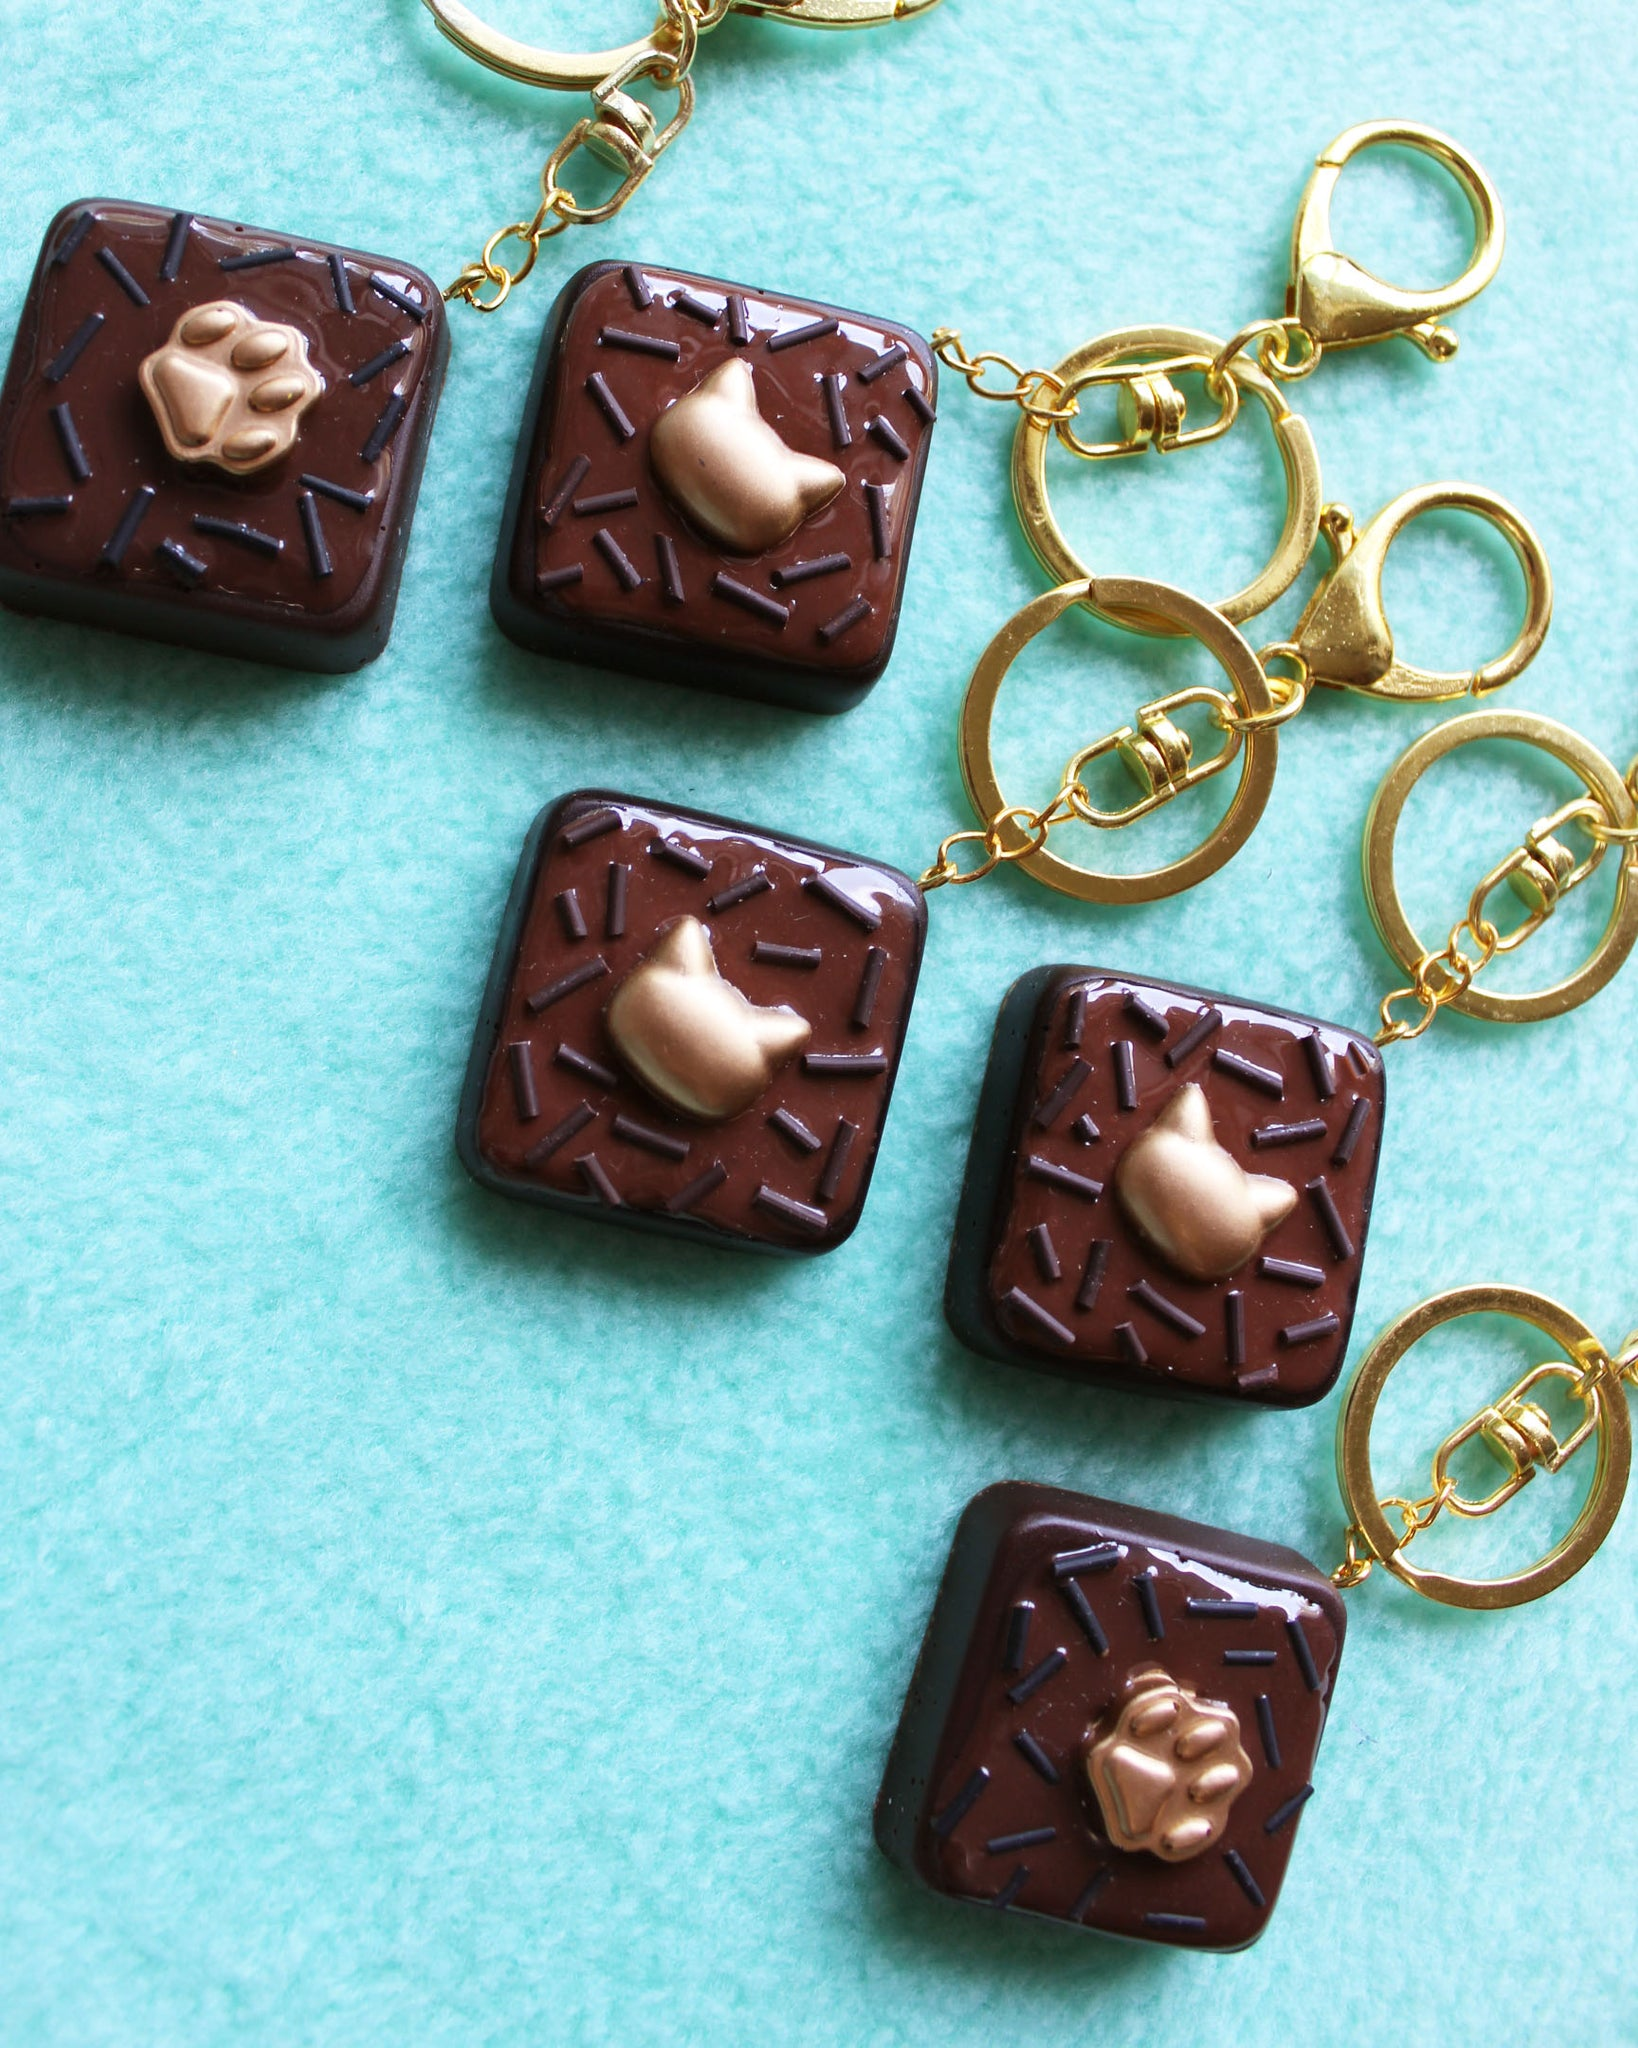 Brownie Bites with Gold Kitty Decorations